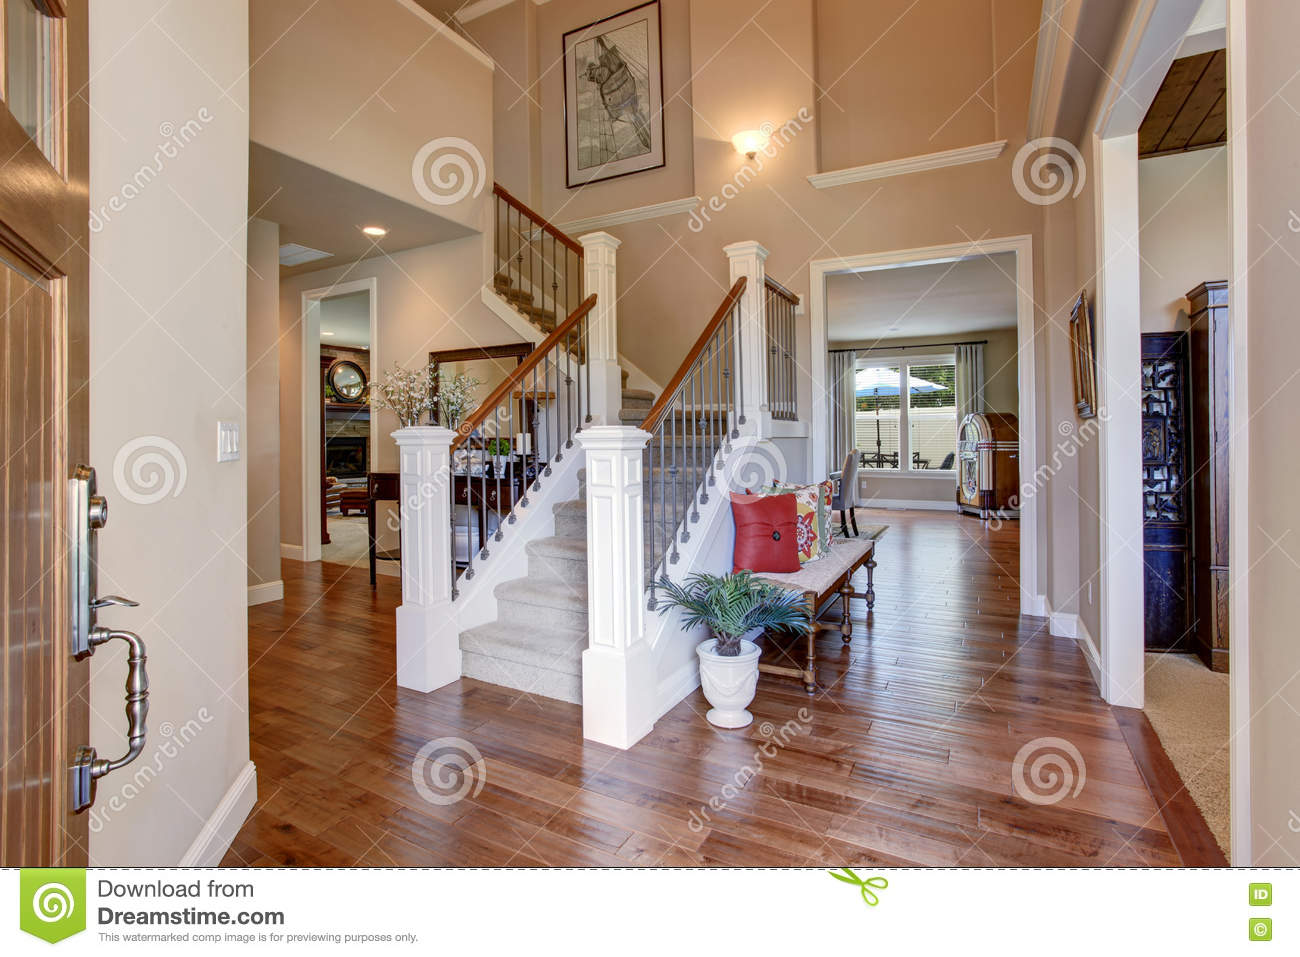 entrance to house with beige walls and hardwood floor indoor view